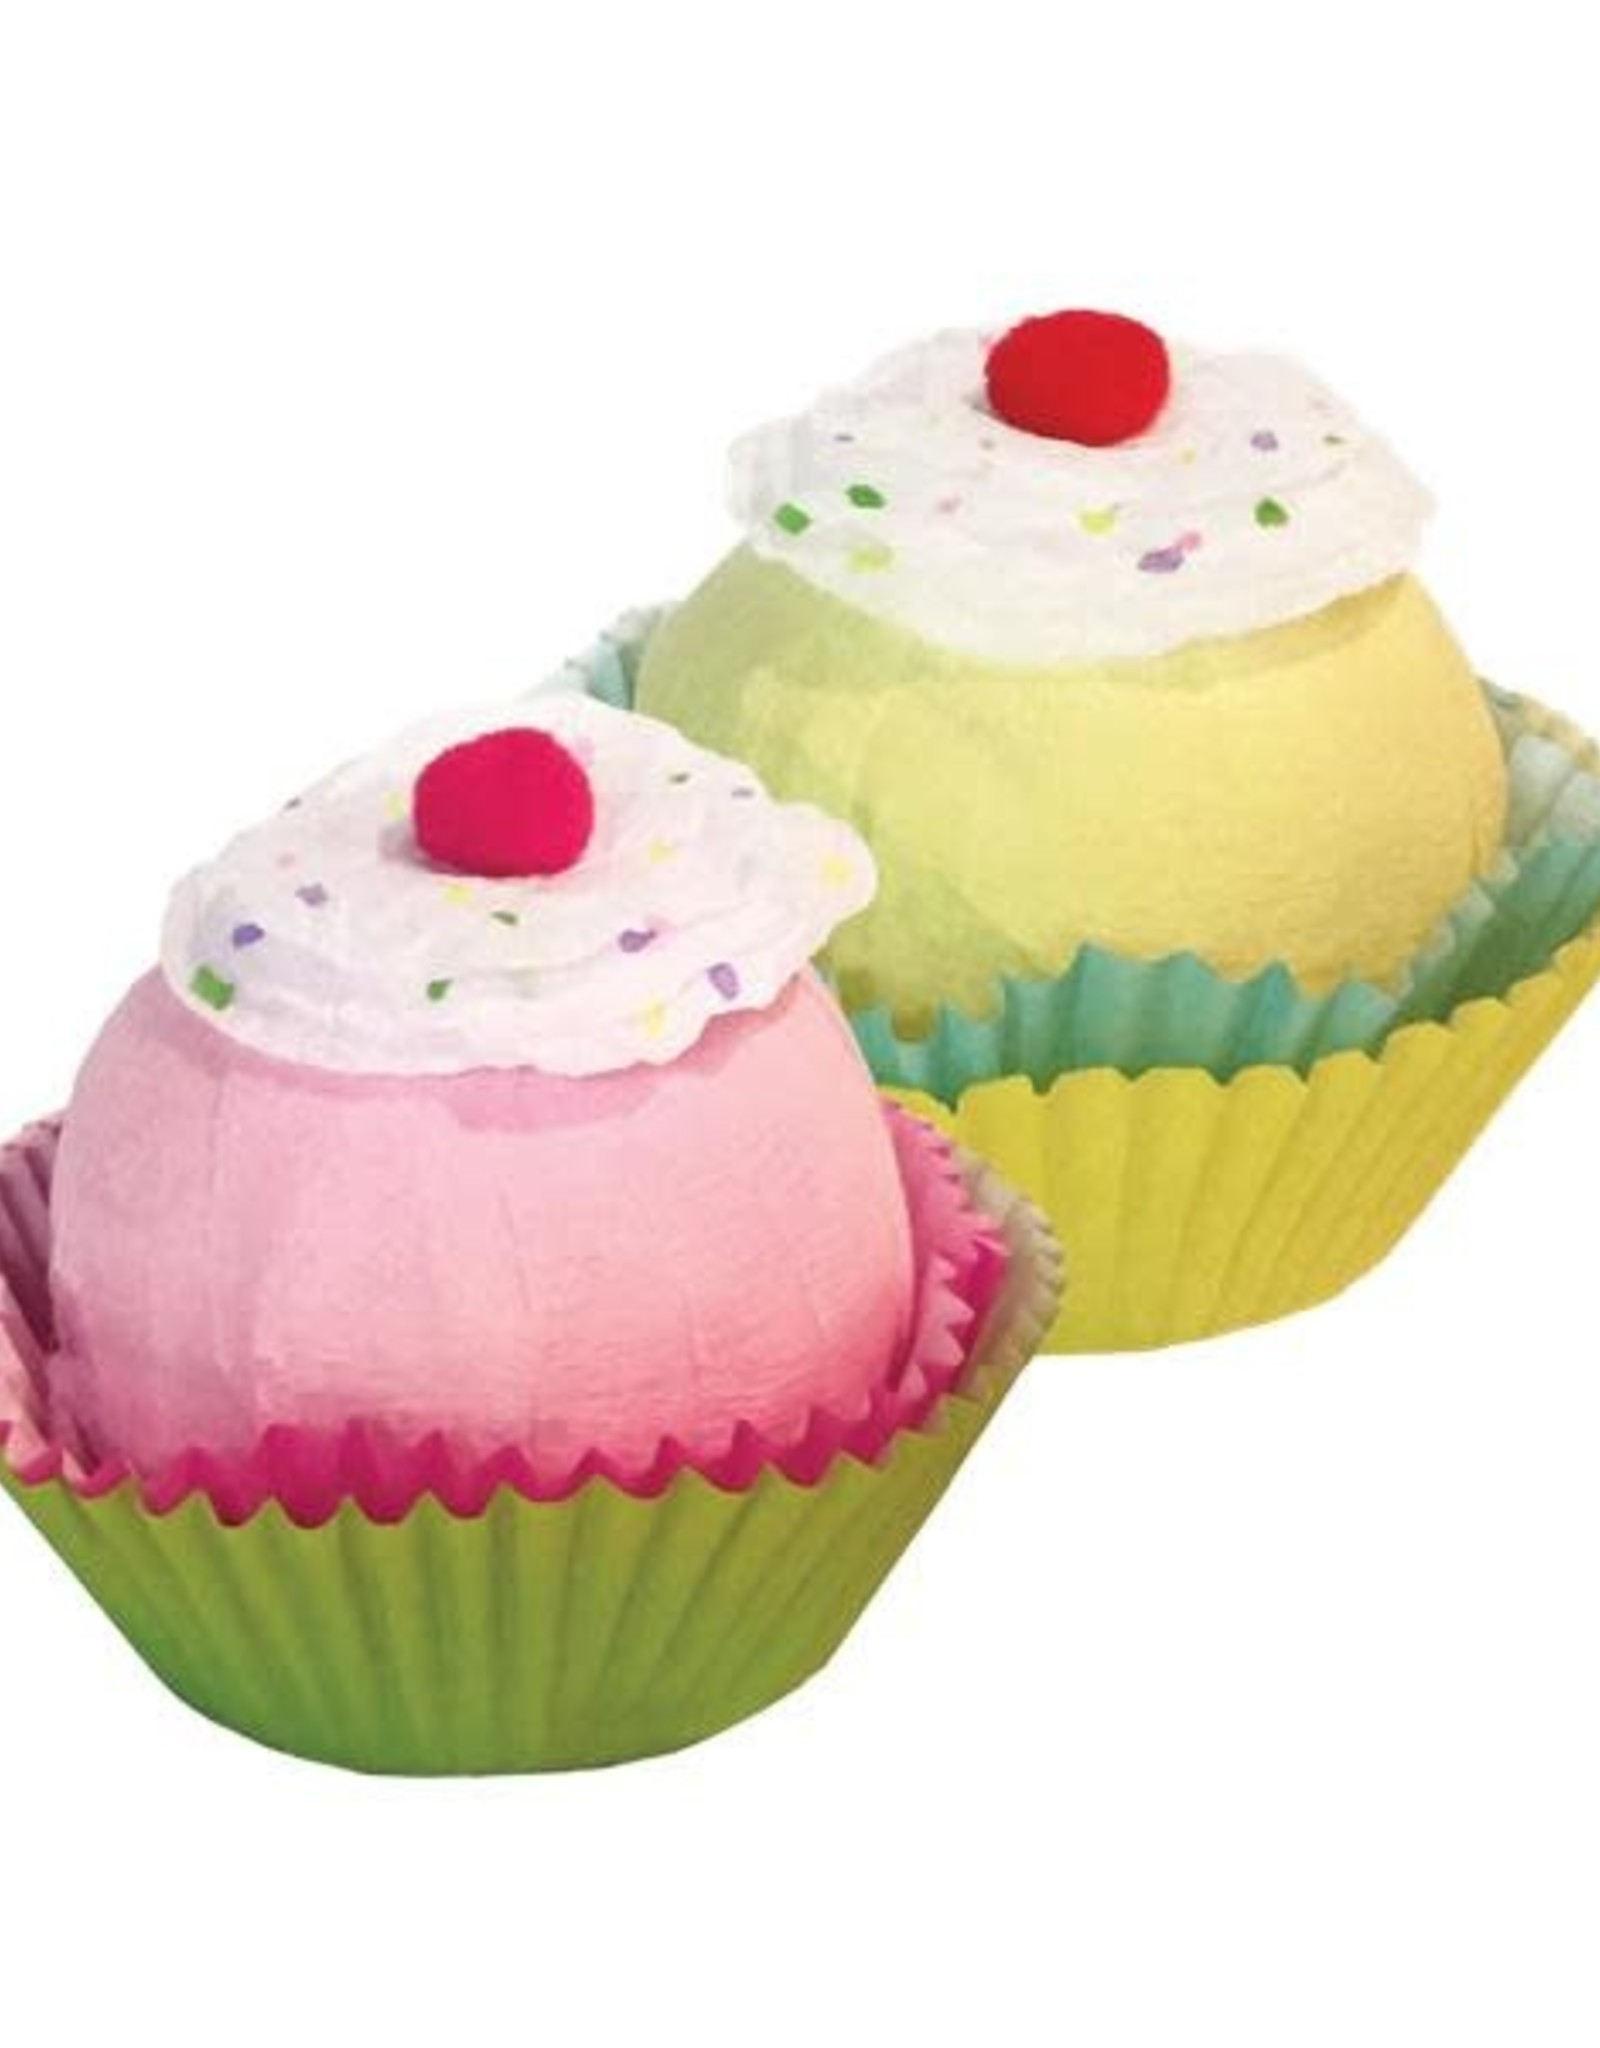 TOPS Malibu TOPS Malibu Mini Surprize Ball Cupcake Assorted